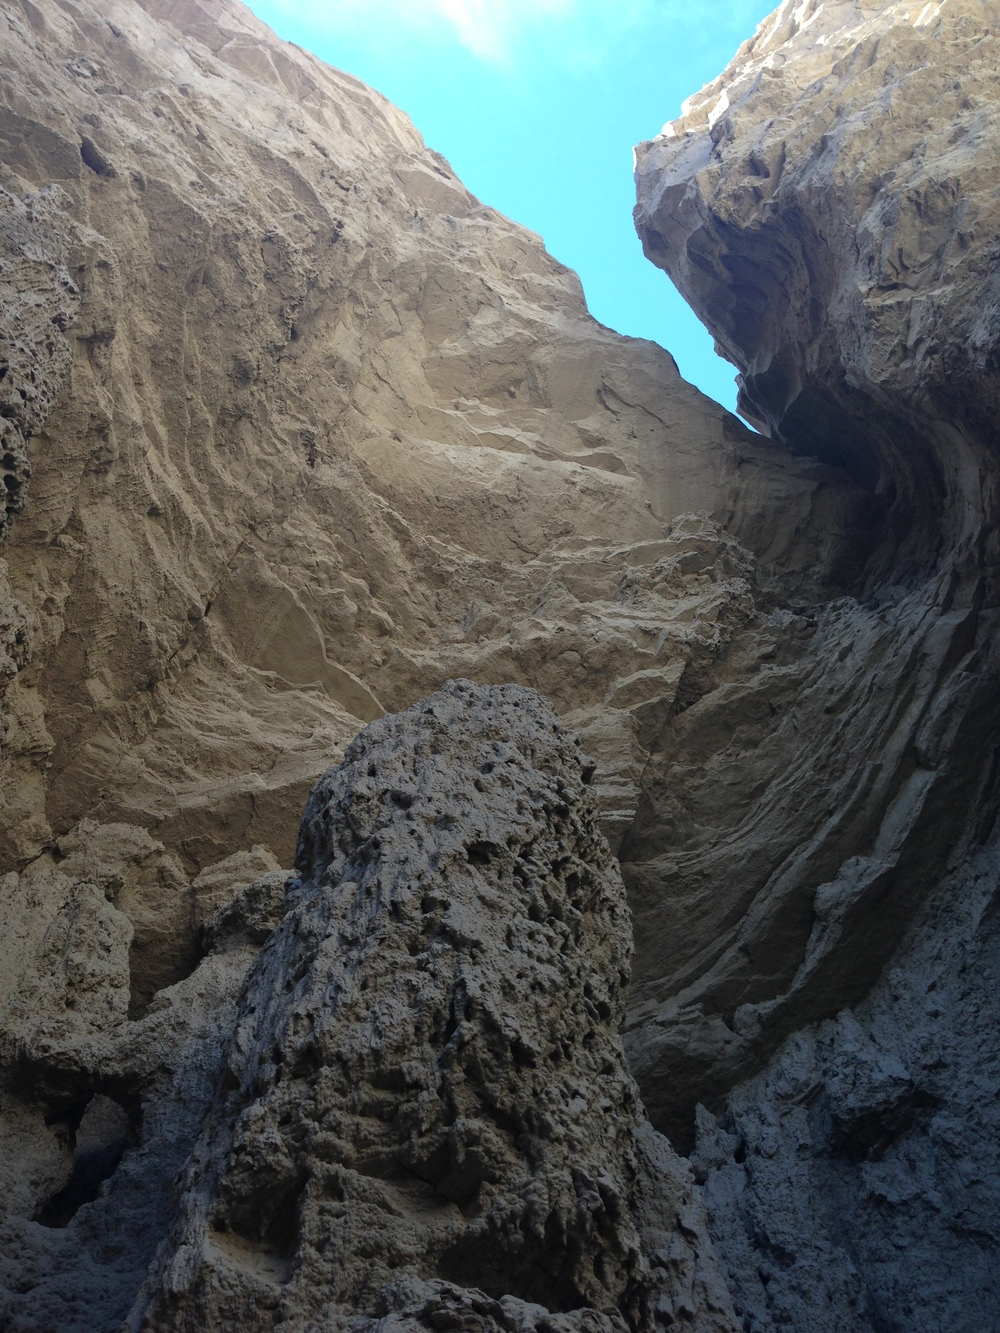 Some of the sand-castle-like mud formations in the Arroyo Tapiado